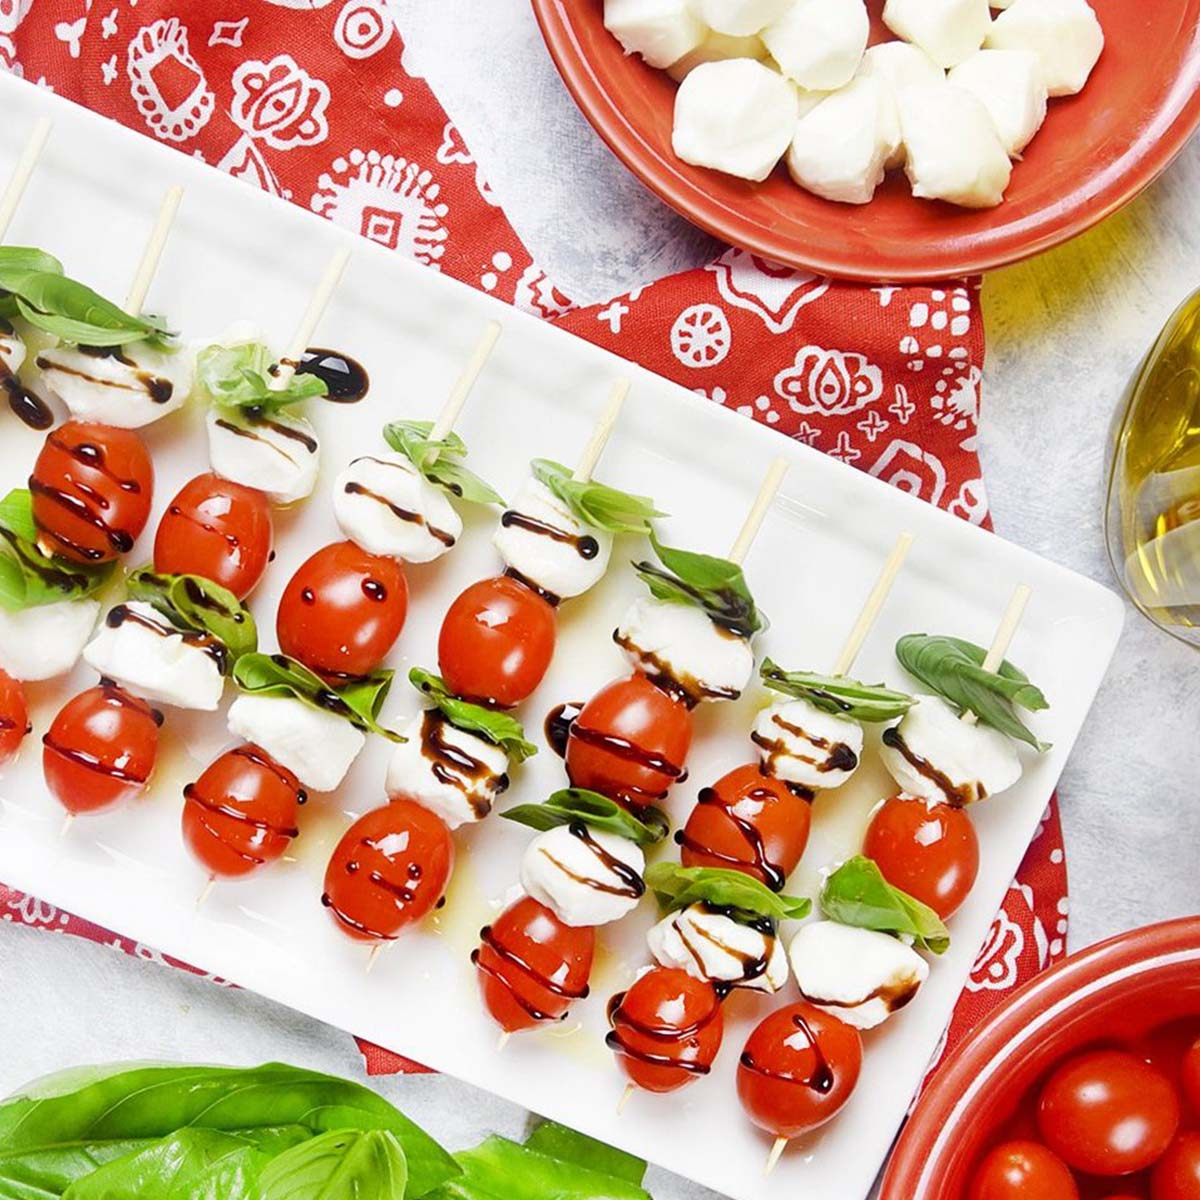 caprese skewers lined up on a plate